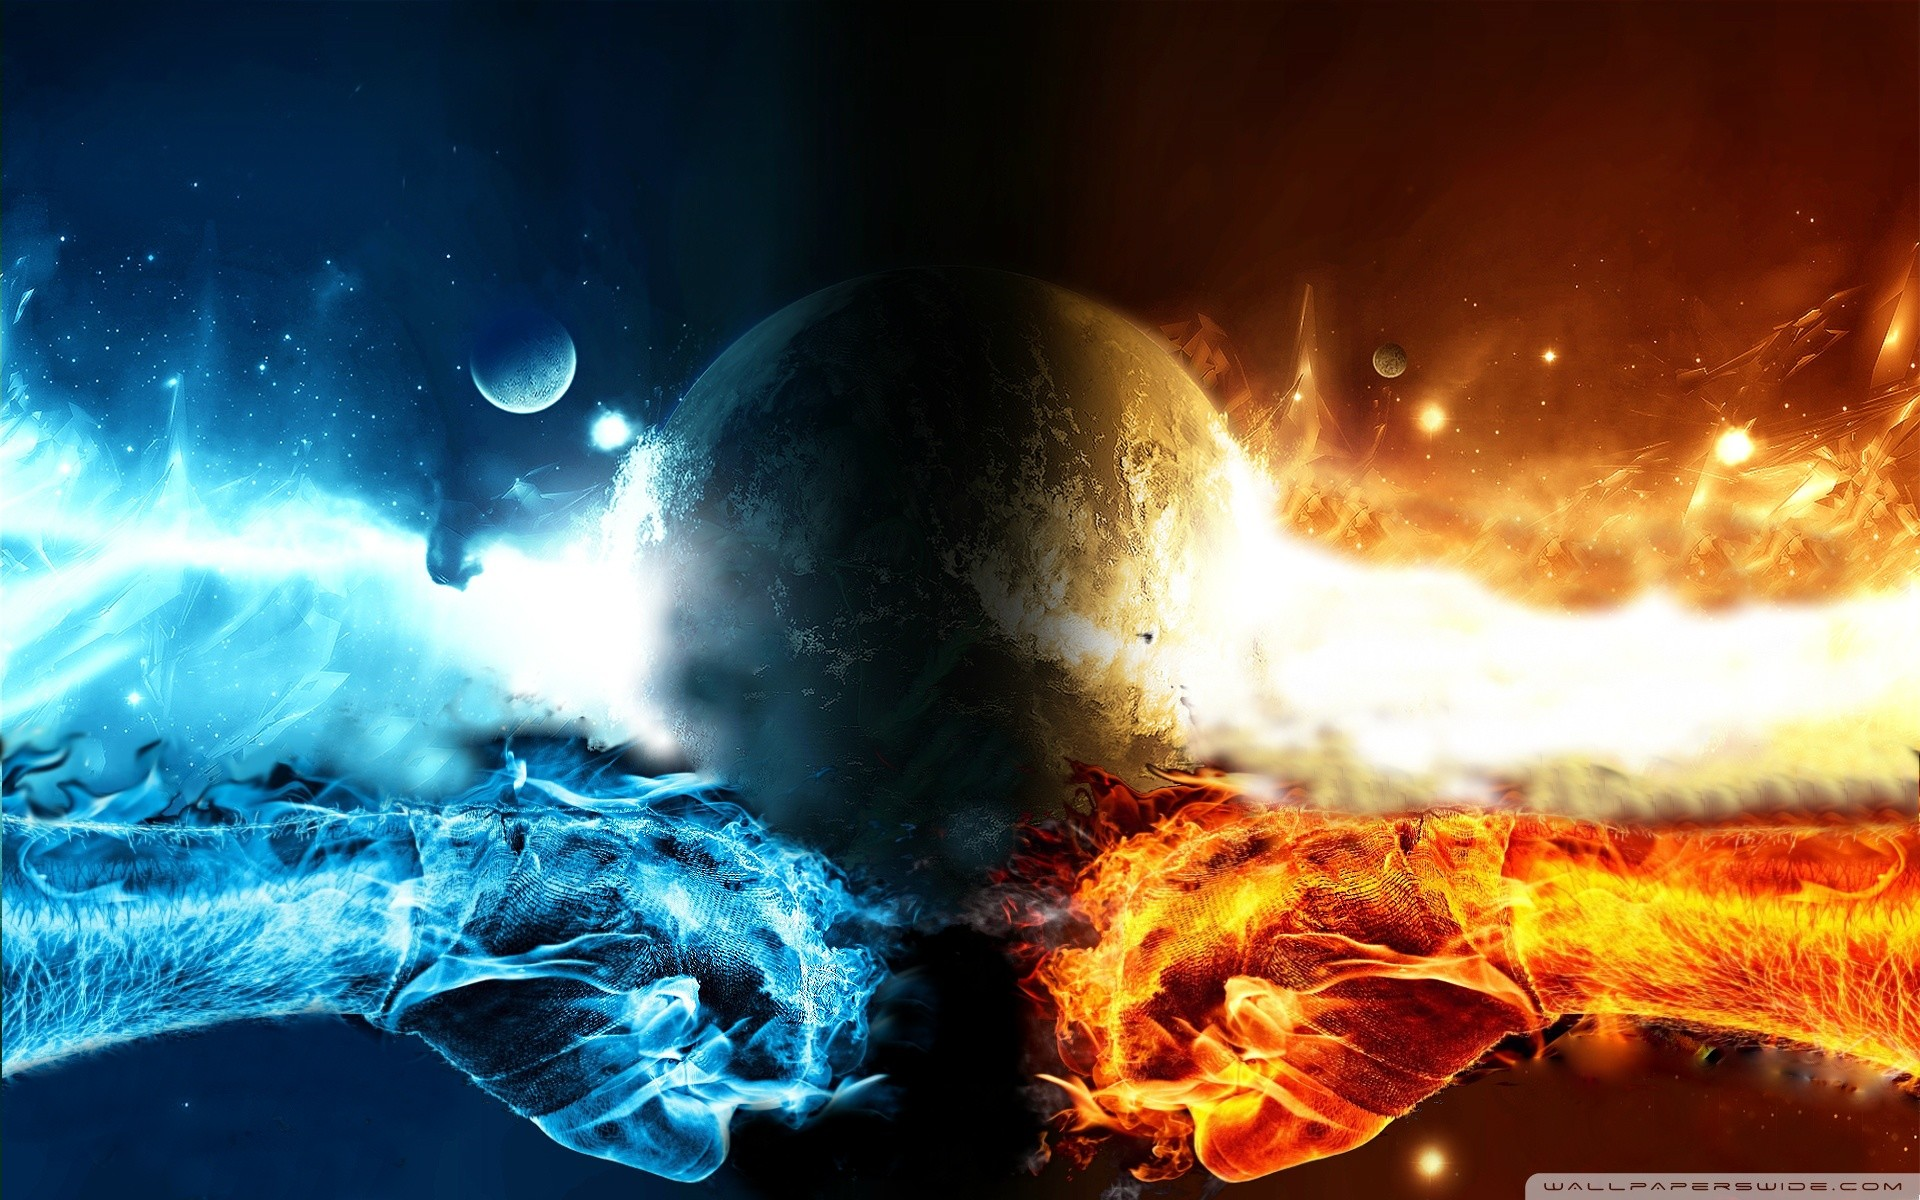 1920x1200 Fire Vs Water 1920×1200 Wallpaper At 3d Wallpapers